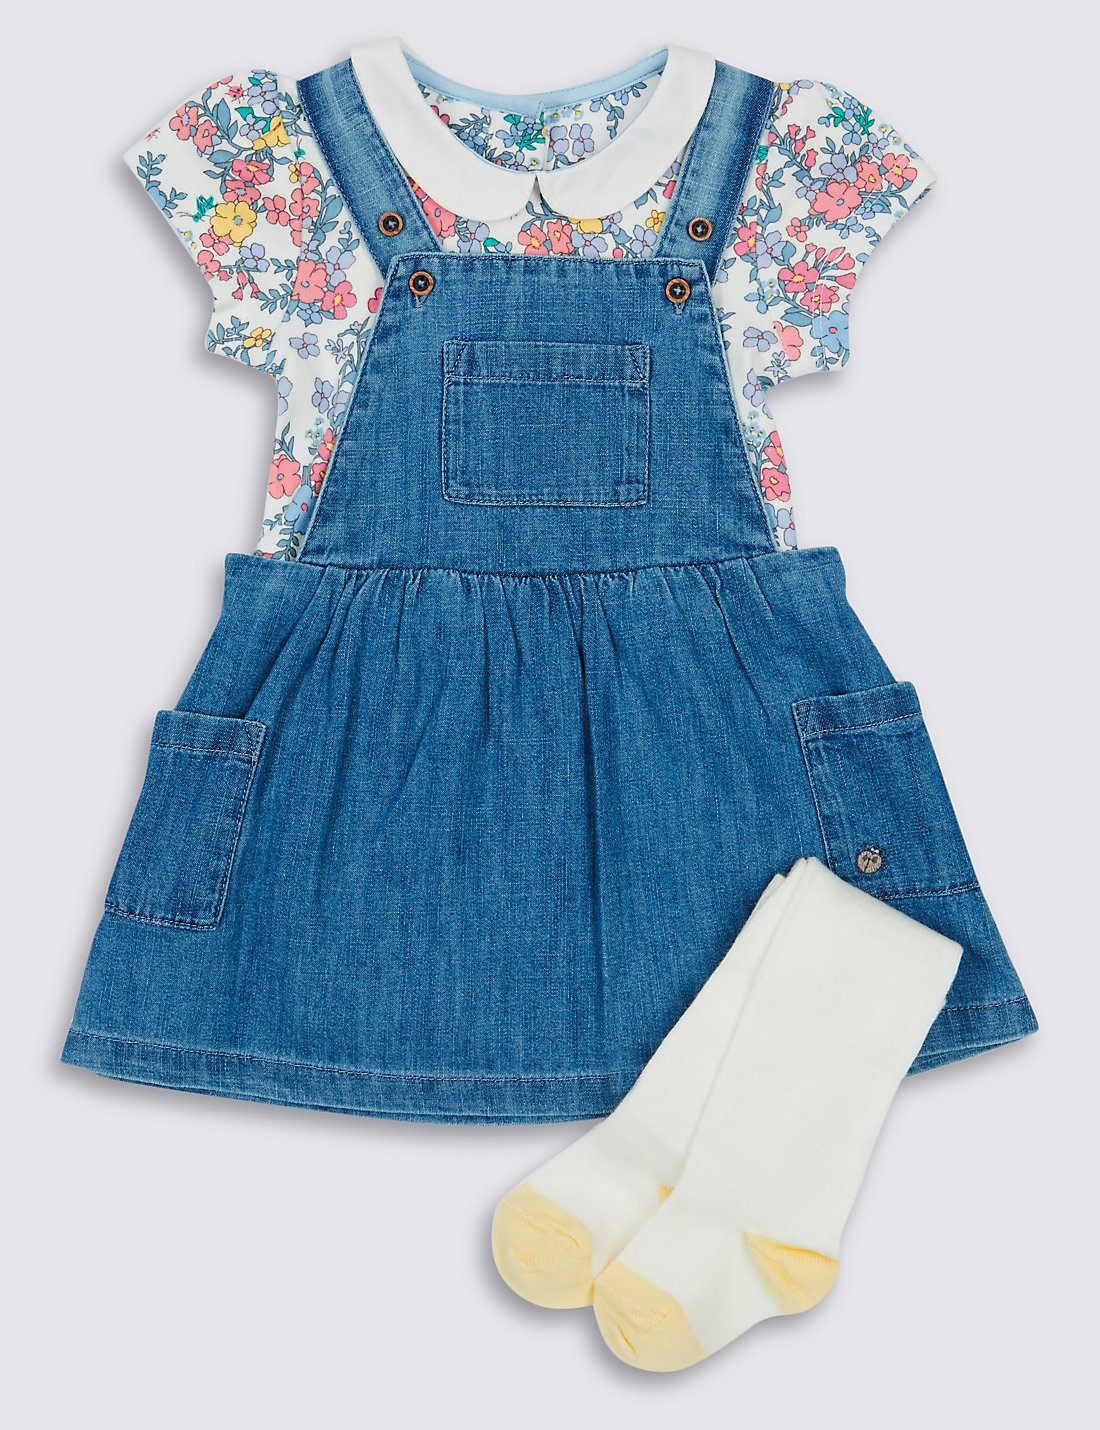 3 Piece Cotton Rich Denim Pinafore, Bodysuit & Tights Outfits